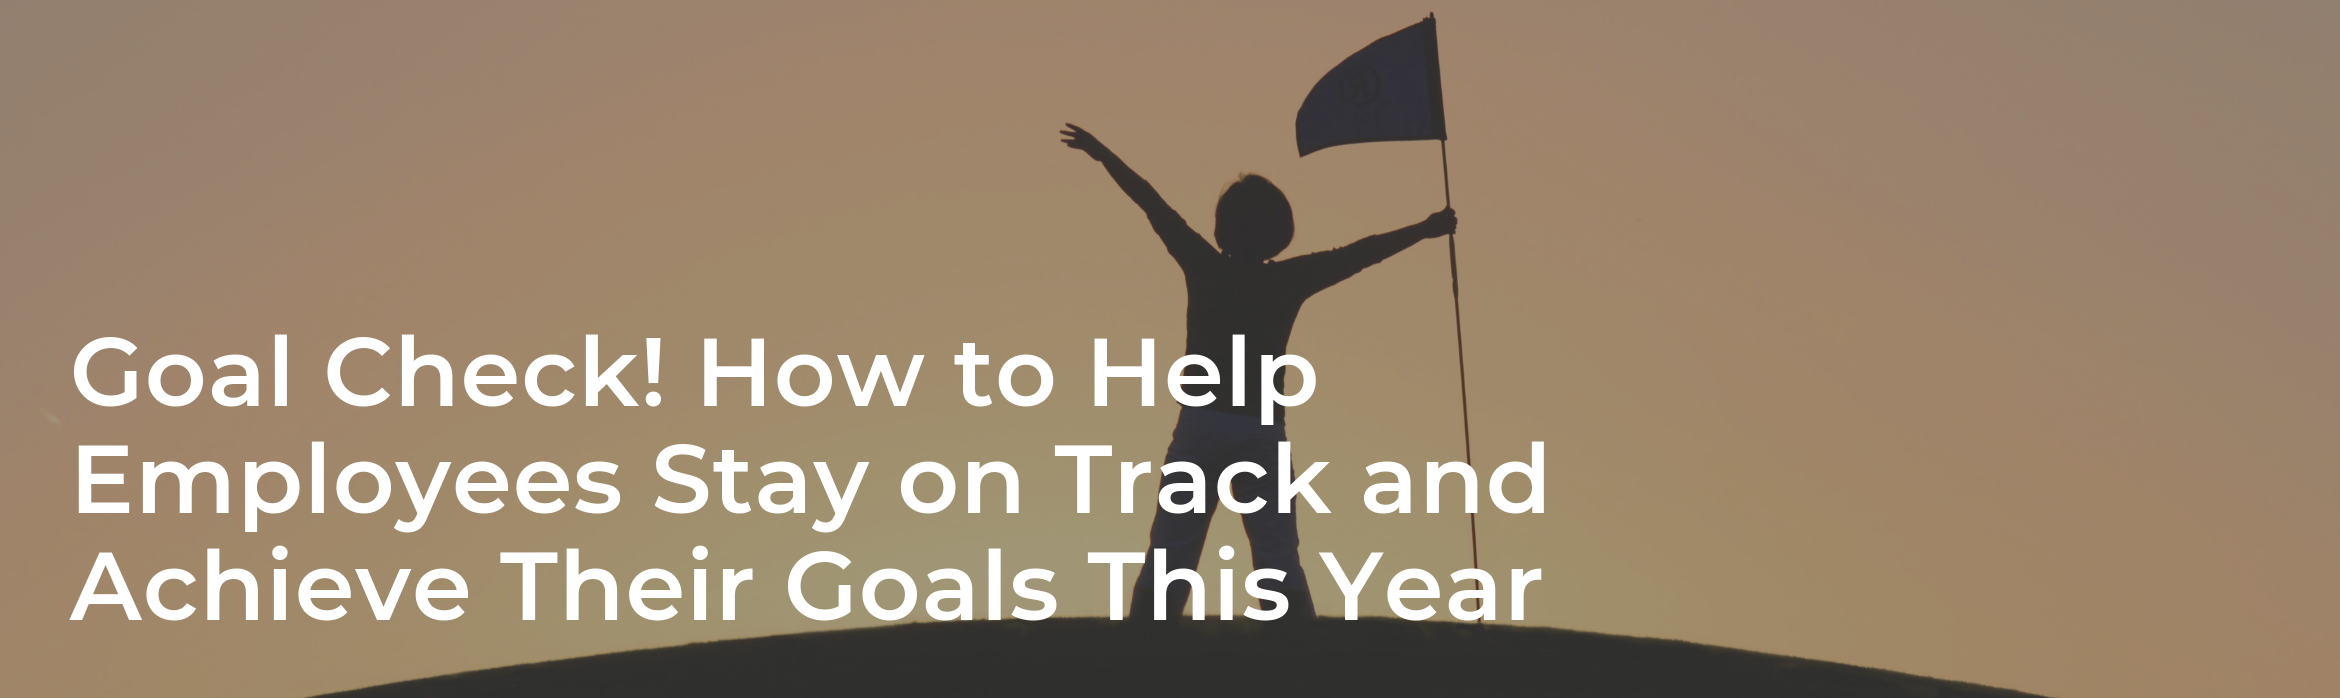 Goal Check! How to Help Employees Stay on Track and Achieve Their Goals This Year